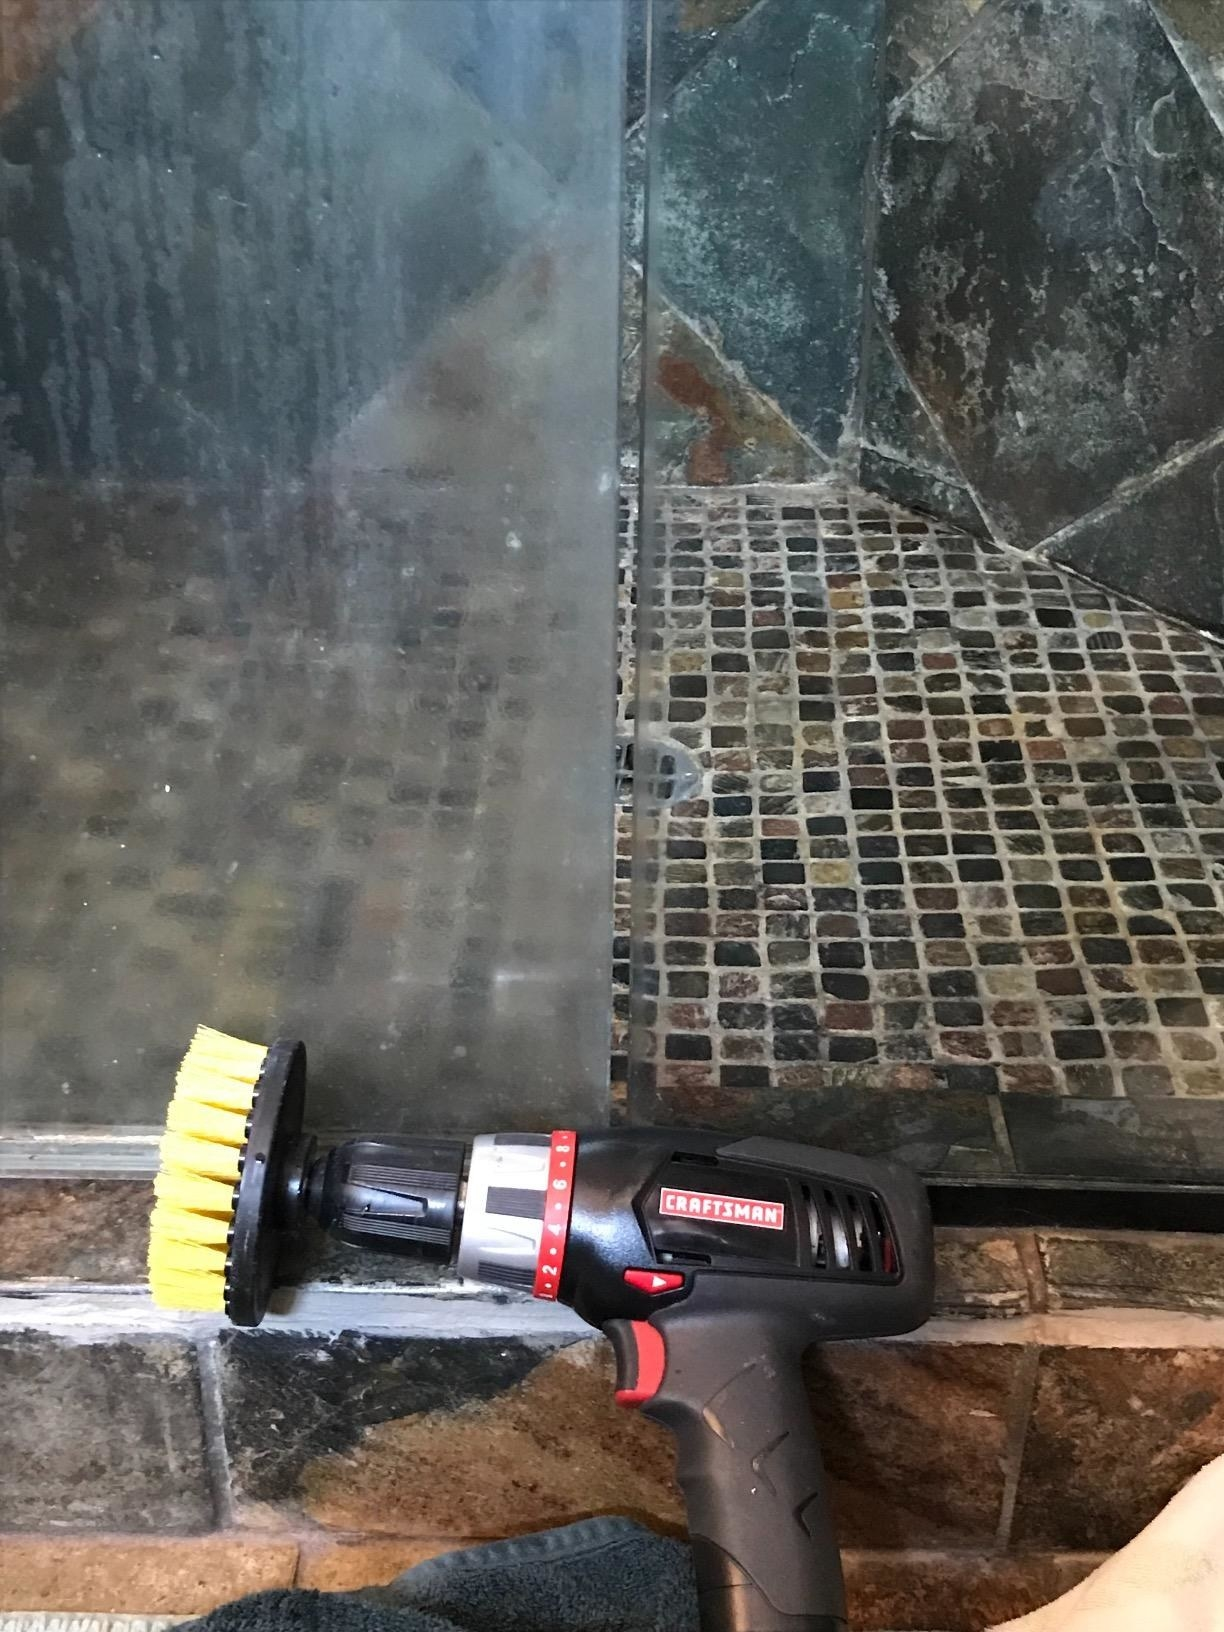 The scrubber and drill next to a shower door, half of which is stained, the other half of which was cleaned thoroughly by the drill